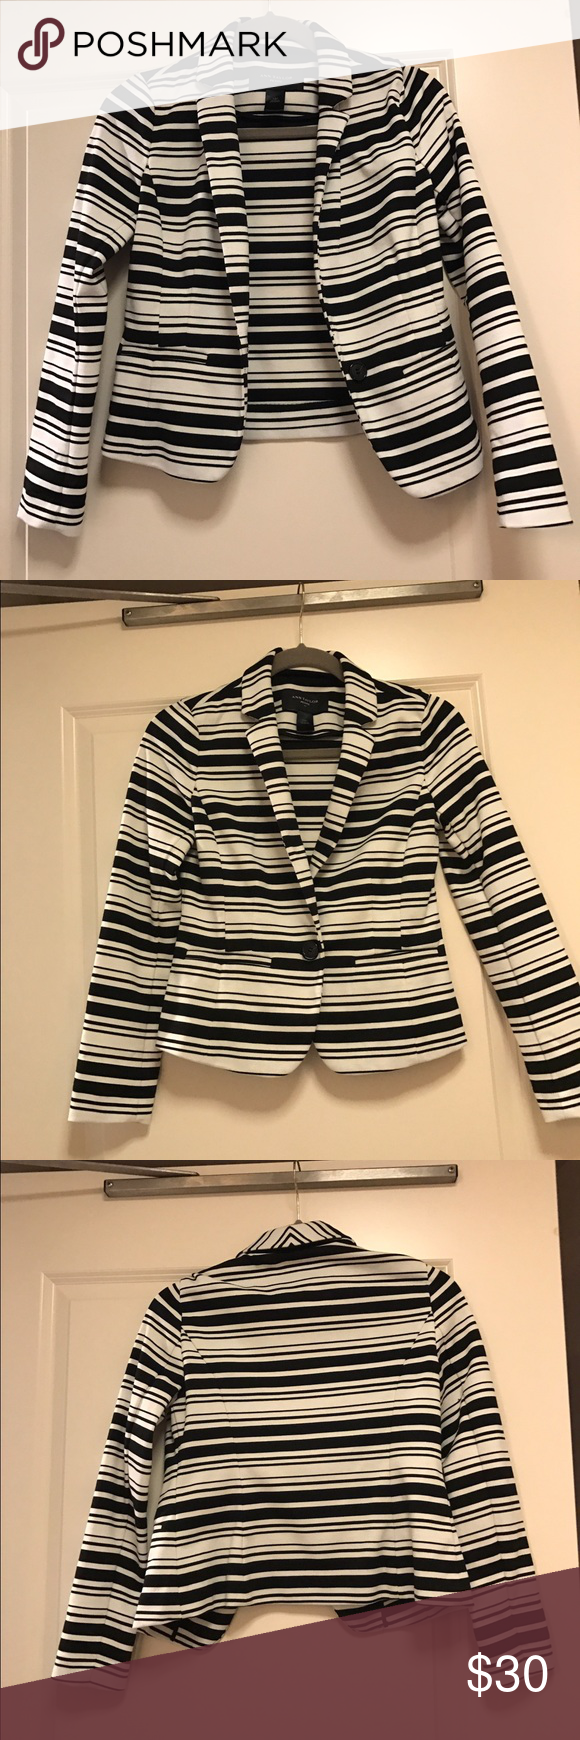 Ann Taylor Blazer Extremely comfortable blazer. It can be dressed down or up! More of a cotton fabric than a regular blazer. Only wore it once. Ann Taylor Jackets & Coats Blazers